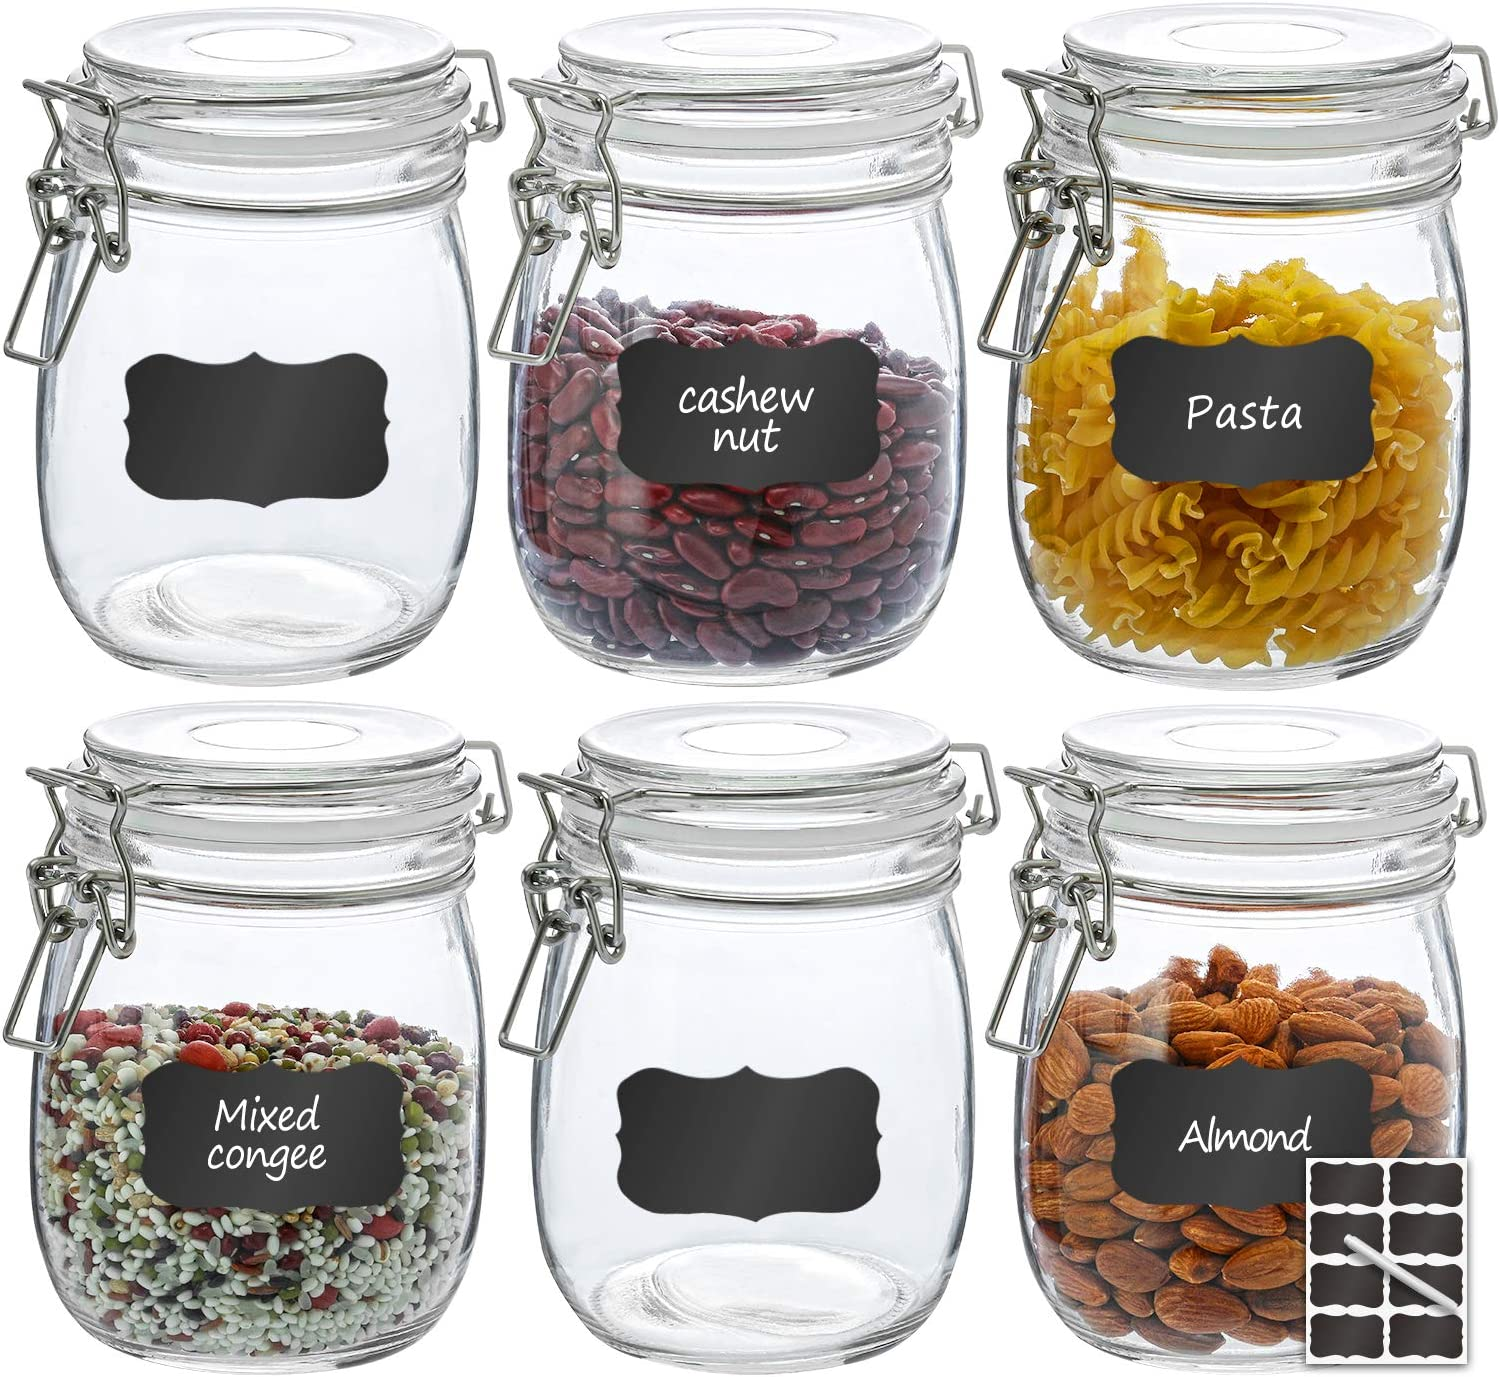 Airtight Glass Jars, RAZCC 6 PACK 27 OZ Round Glass Canister Set with Wide Mouth Leak-Proof Fit for Food Storage, Canning, Cereal Container